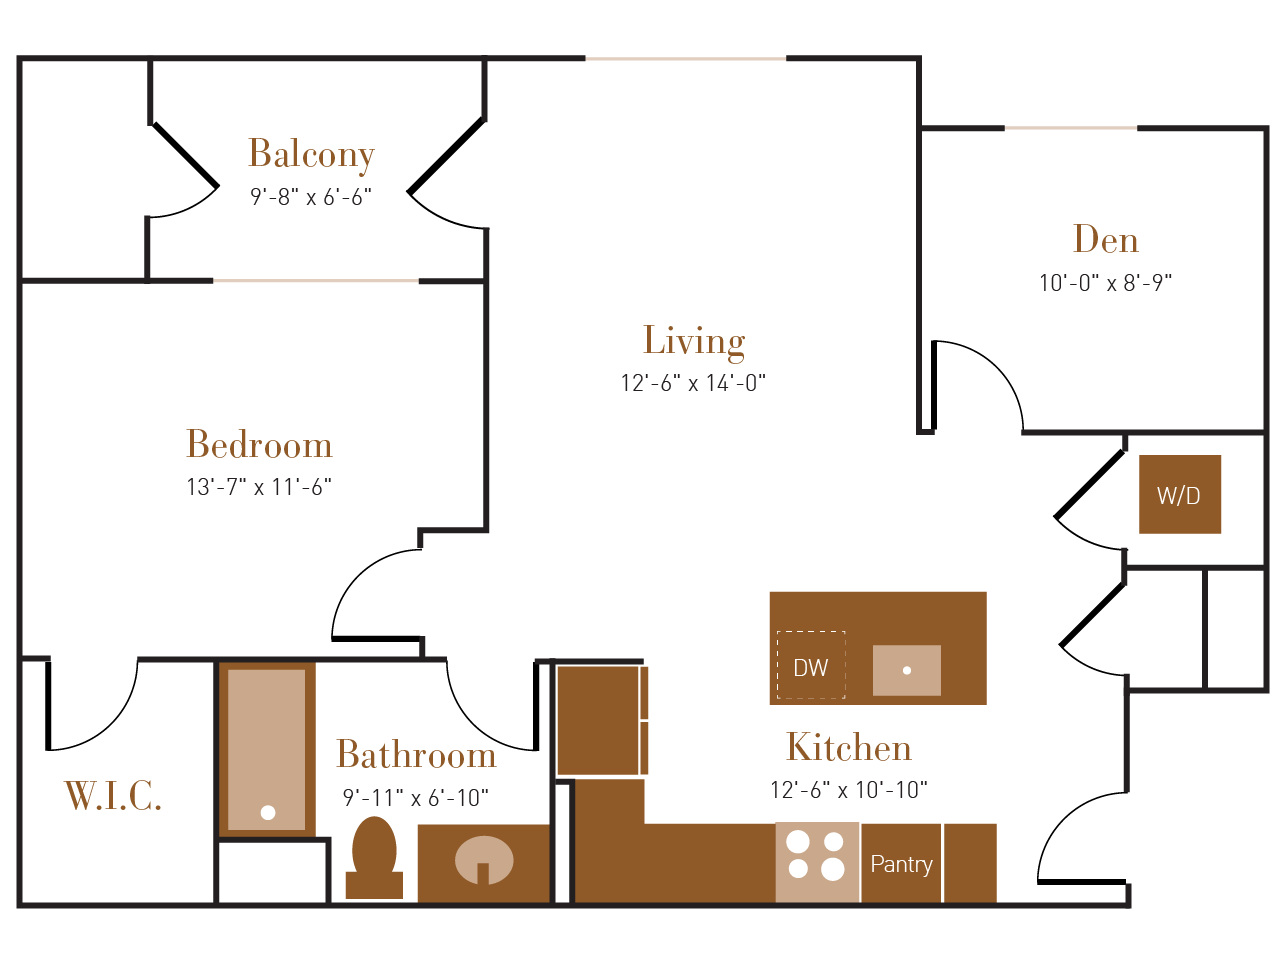 A Two floor plan diagram. One bedroom, one bathroom, a den, an open kitchen and living area, a balcony, and a washer dryer.